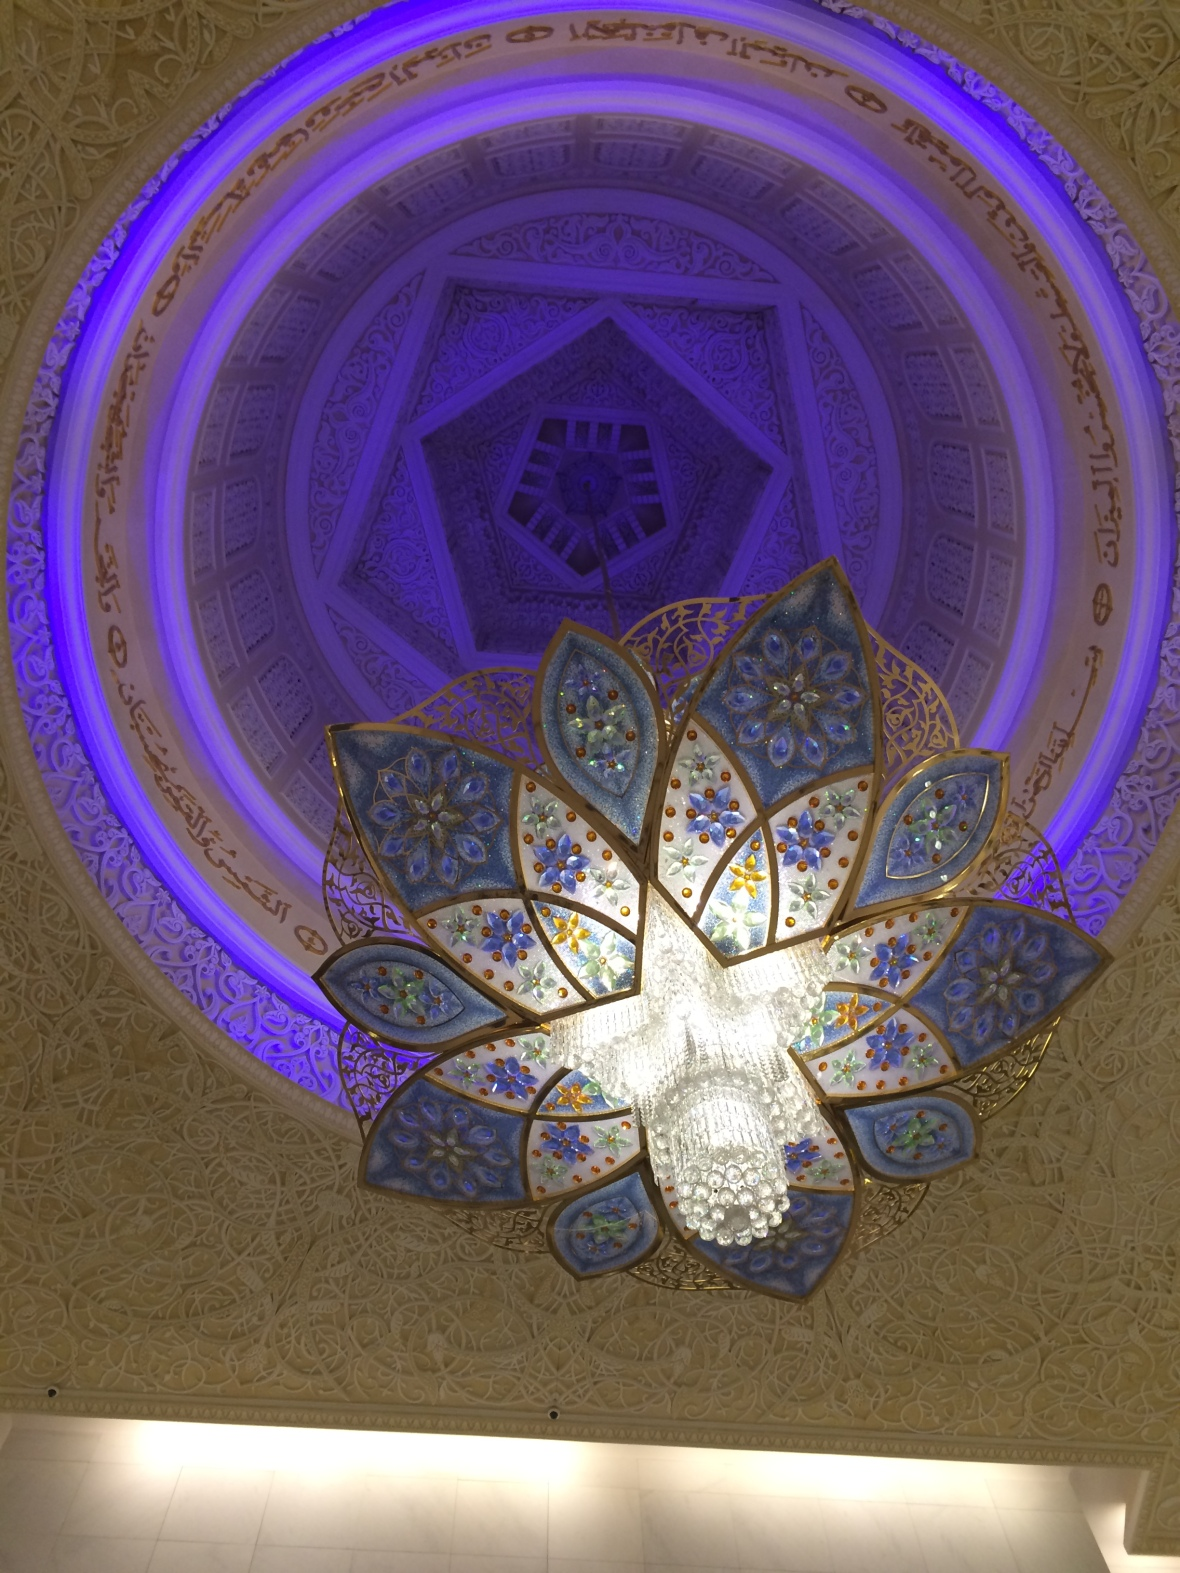 Chandelier, White Arches, Sheikh Zayed Grand Mosque, Abu Dhabi, UAE